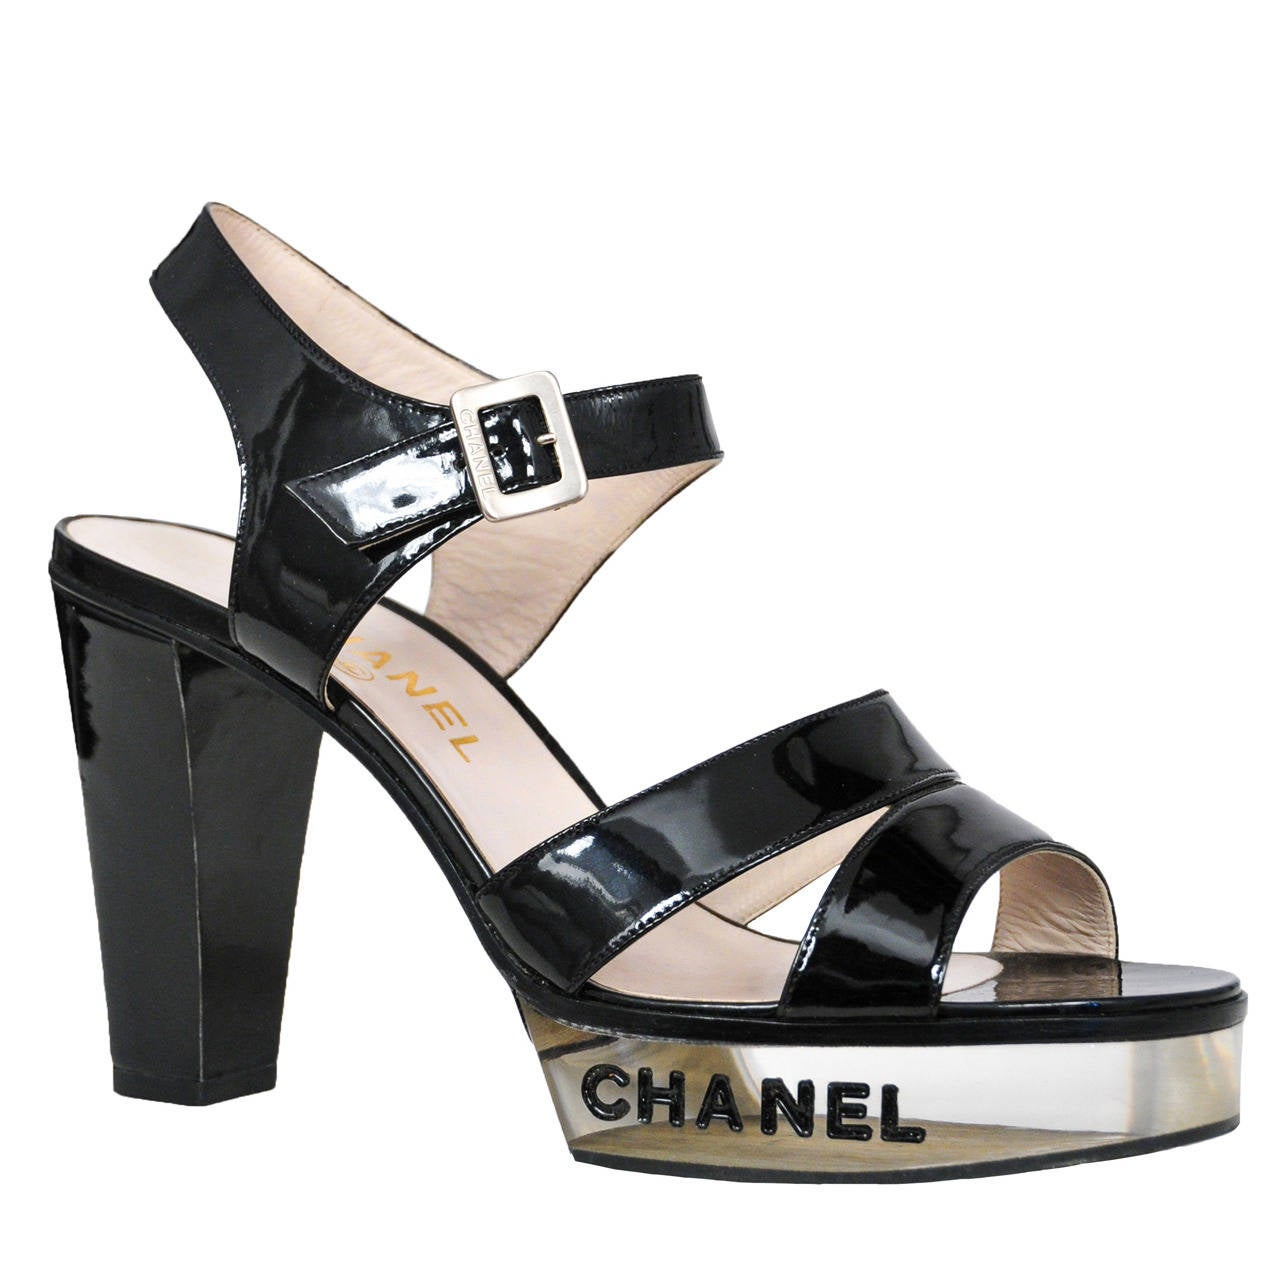 Chanel Lucite Platforms